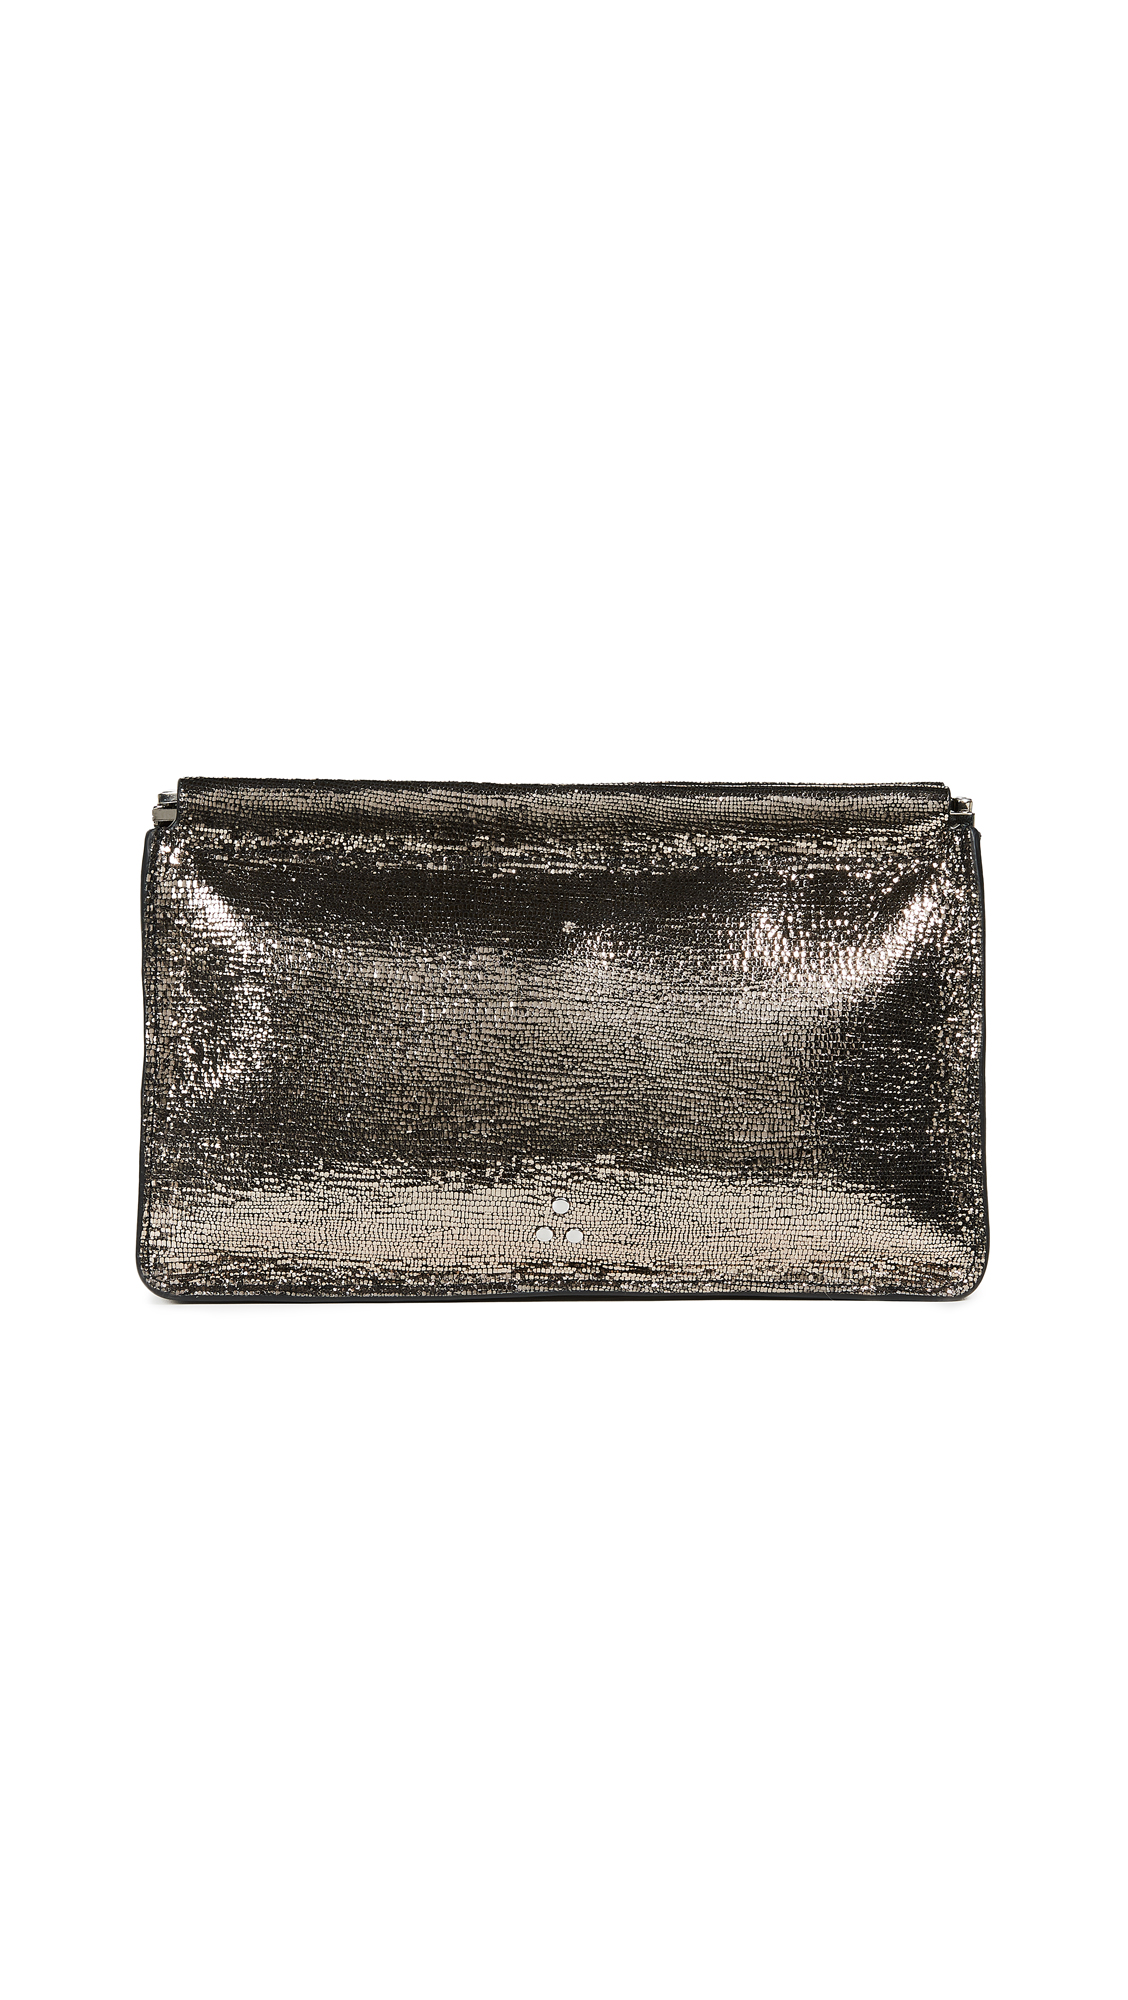 Jerome Dreyfuss Clic Clac Clutch In Champagne